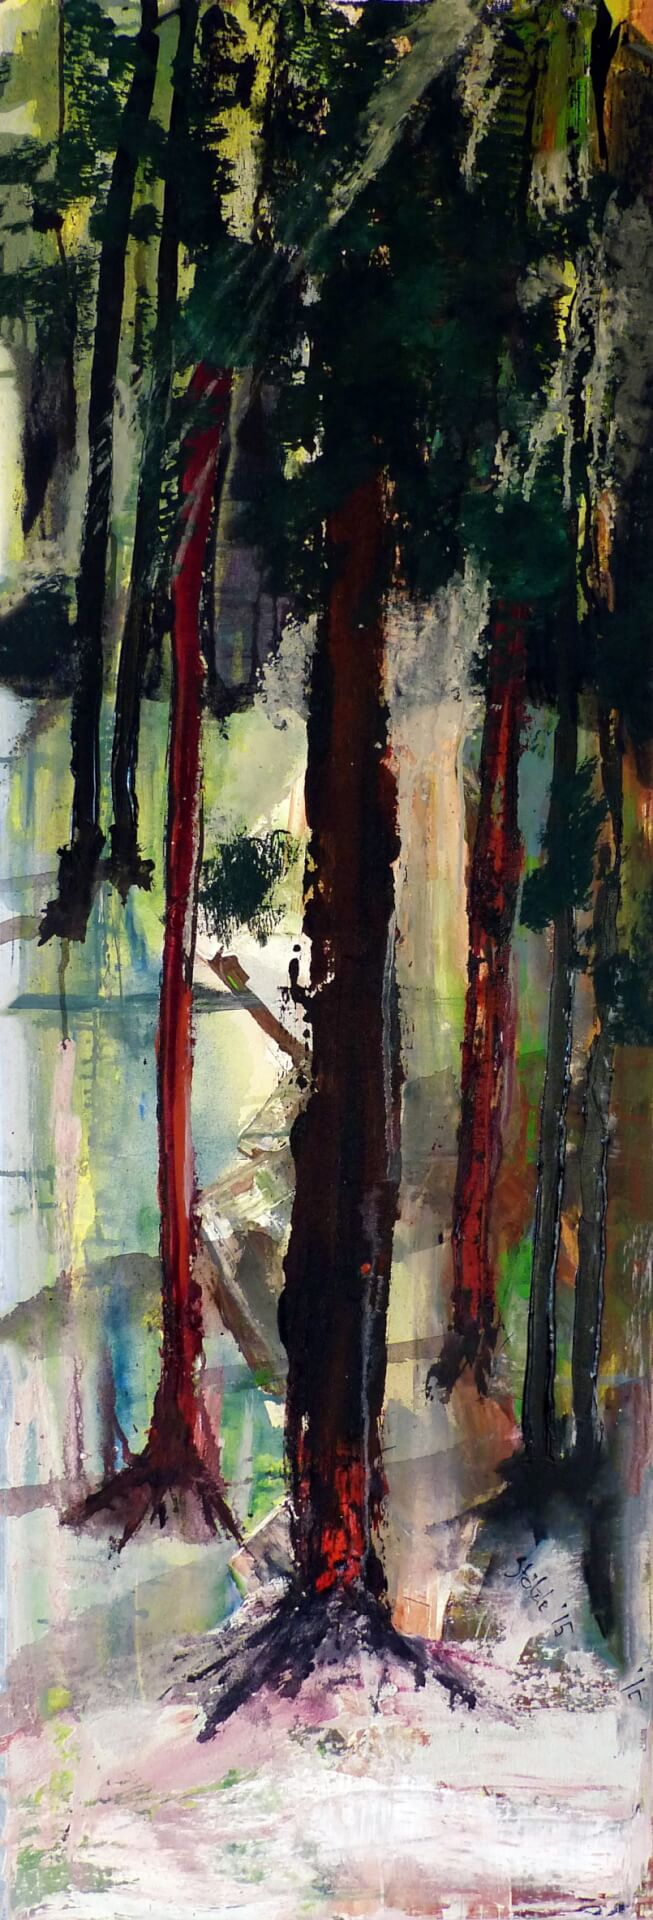 Hohlbaum Art I Sonja Leona I In the woods